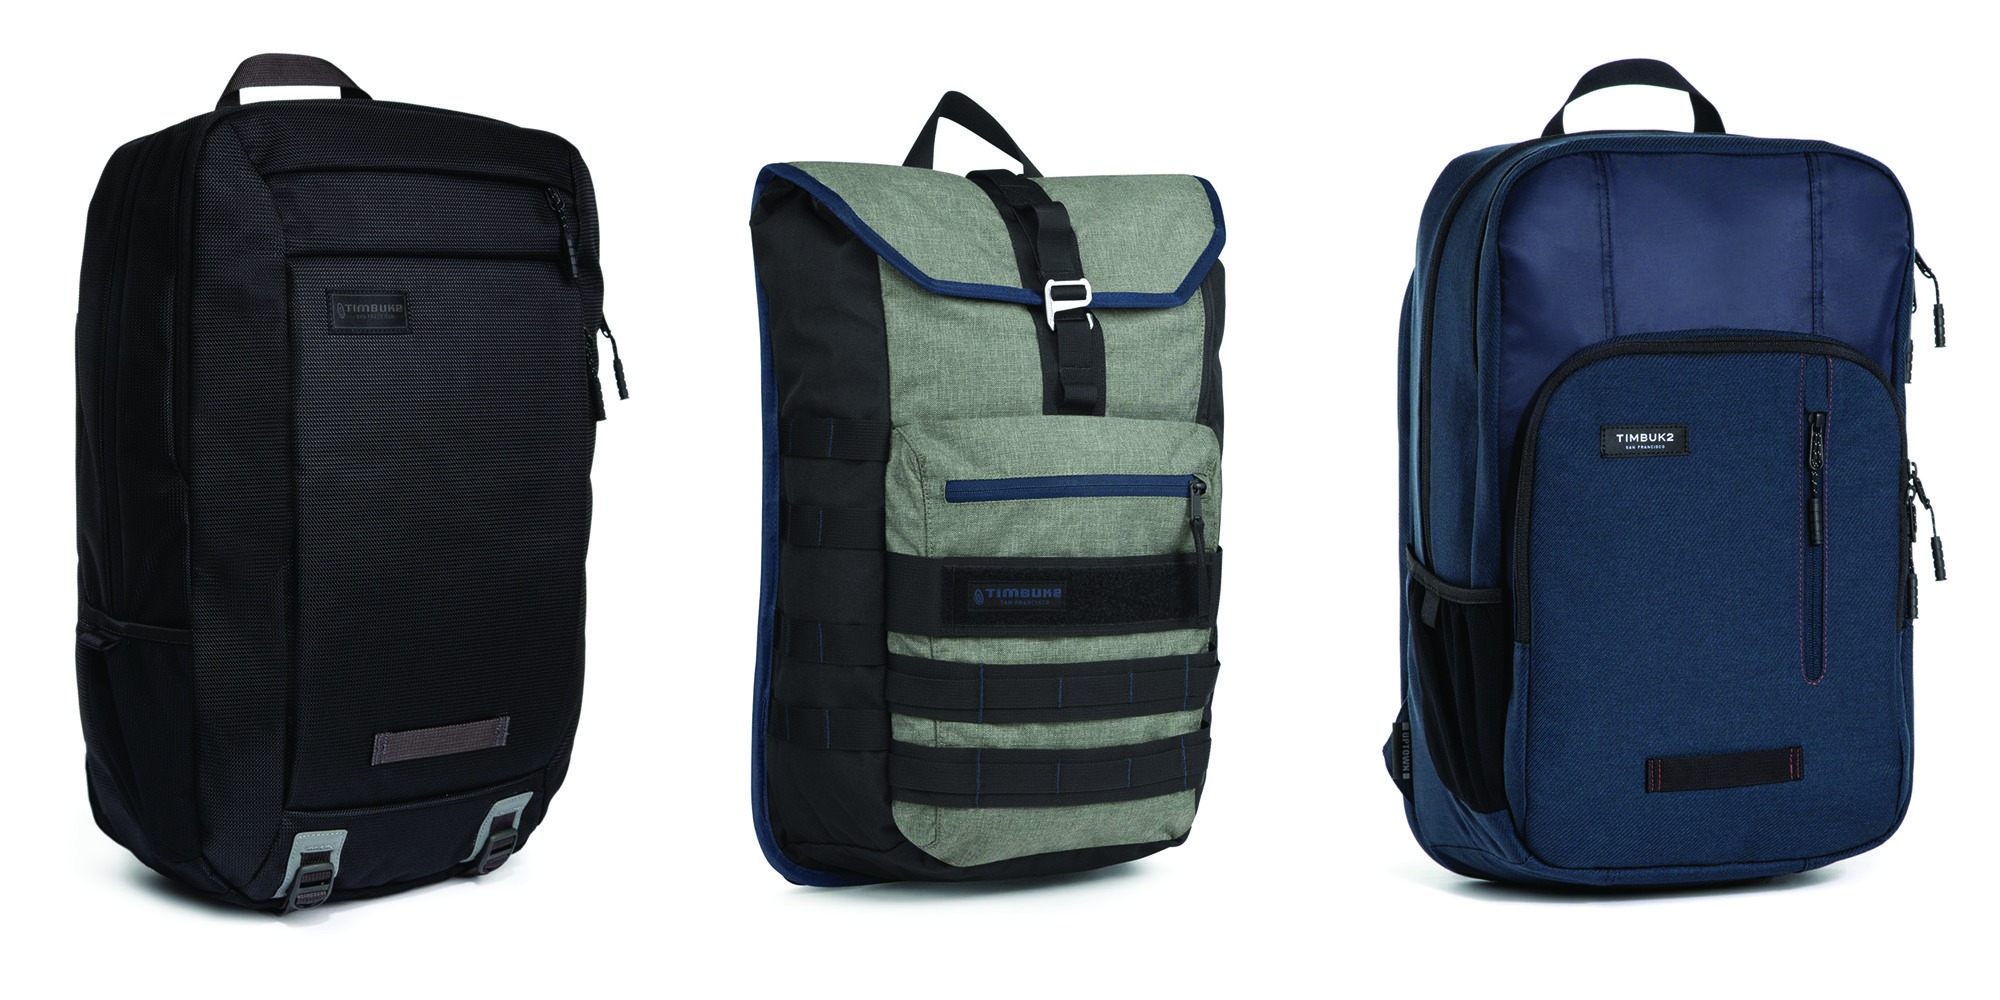 timbuk2-messenger-bag-sale